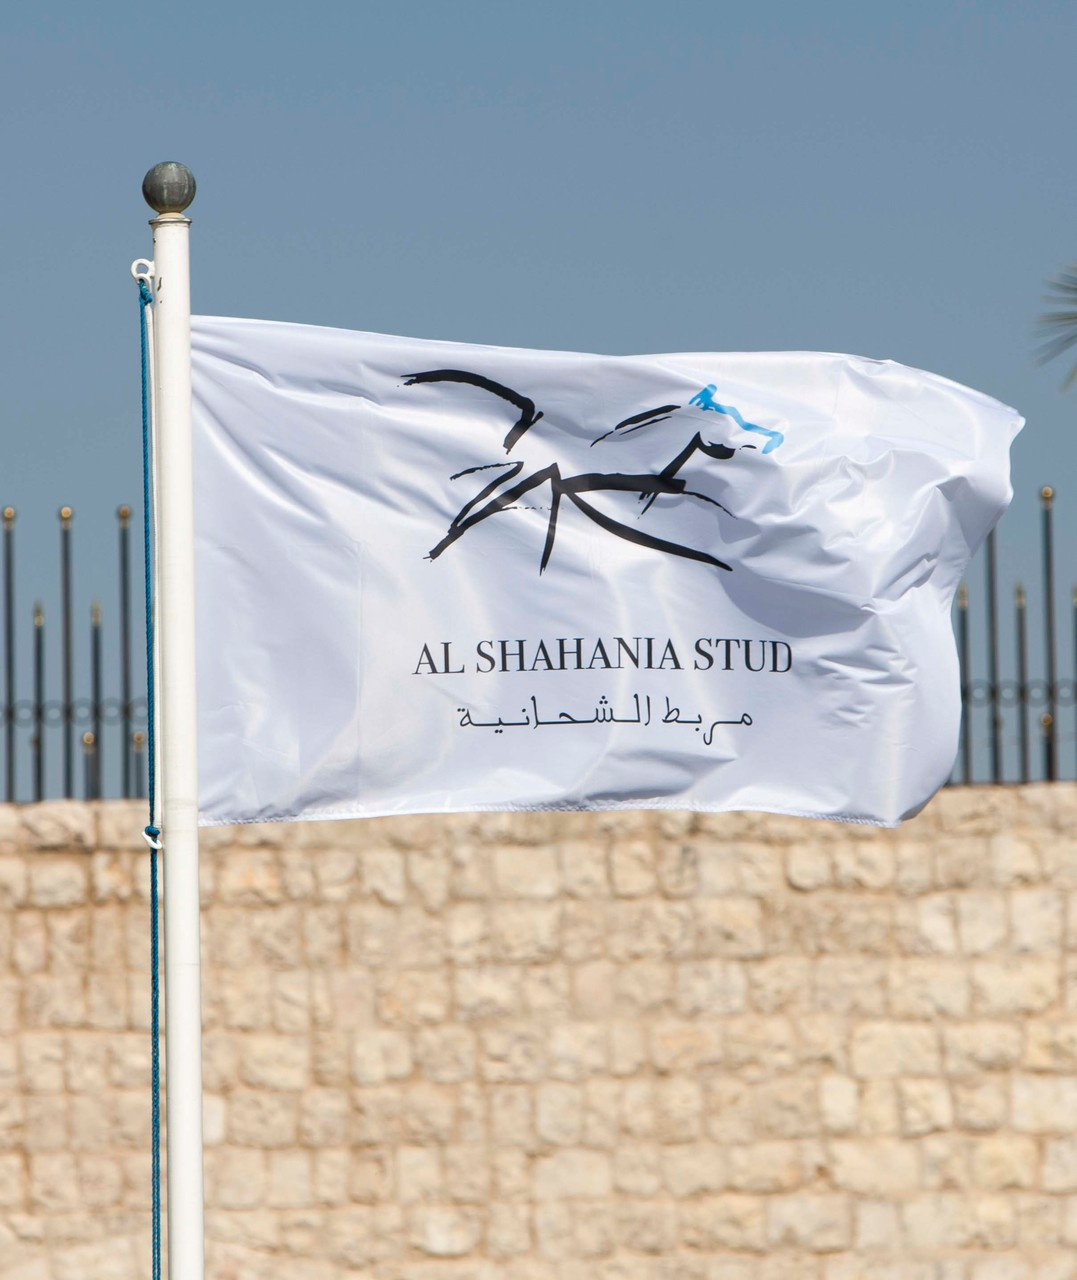 Our generous host: Al Shahania Stud Farm